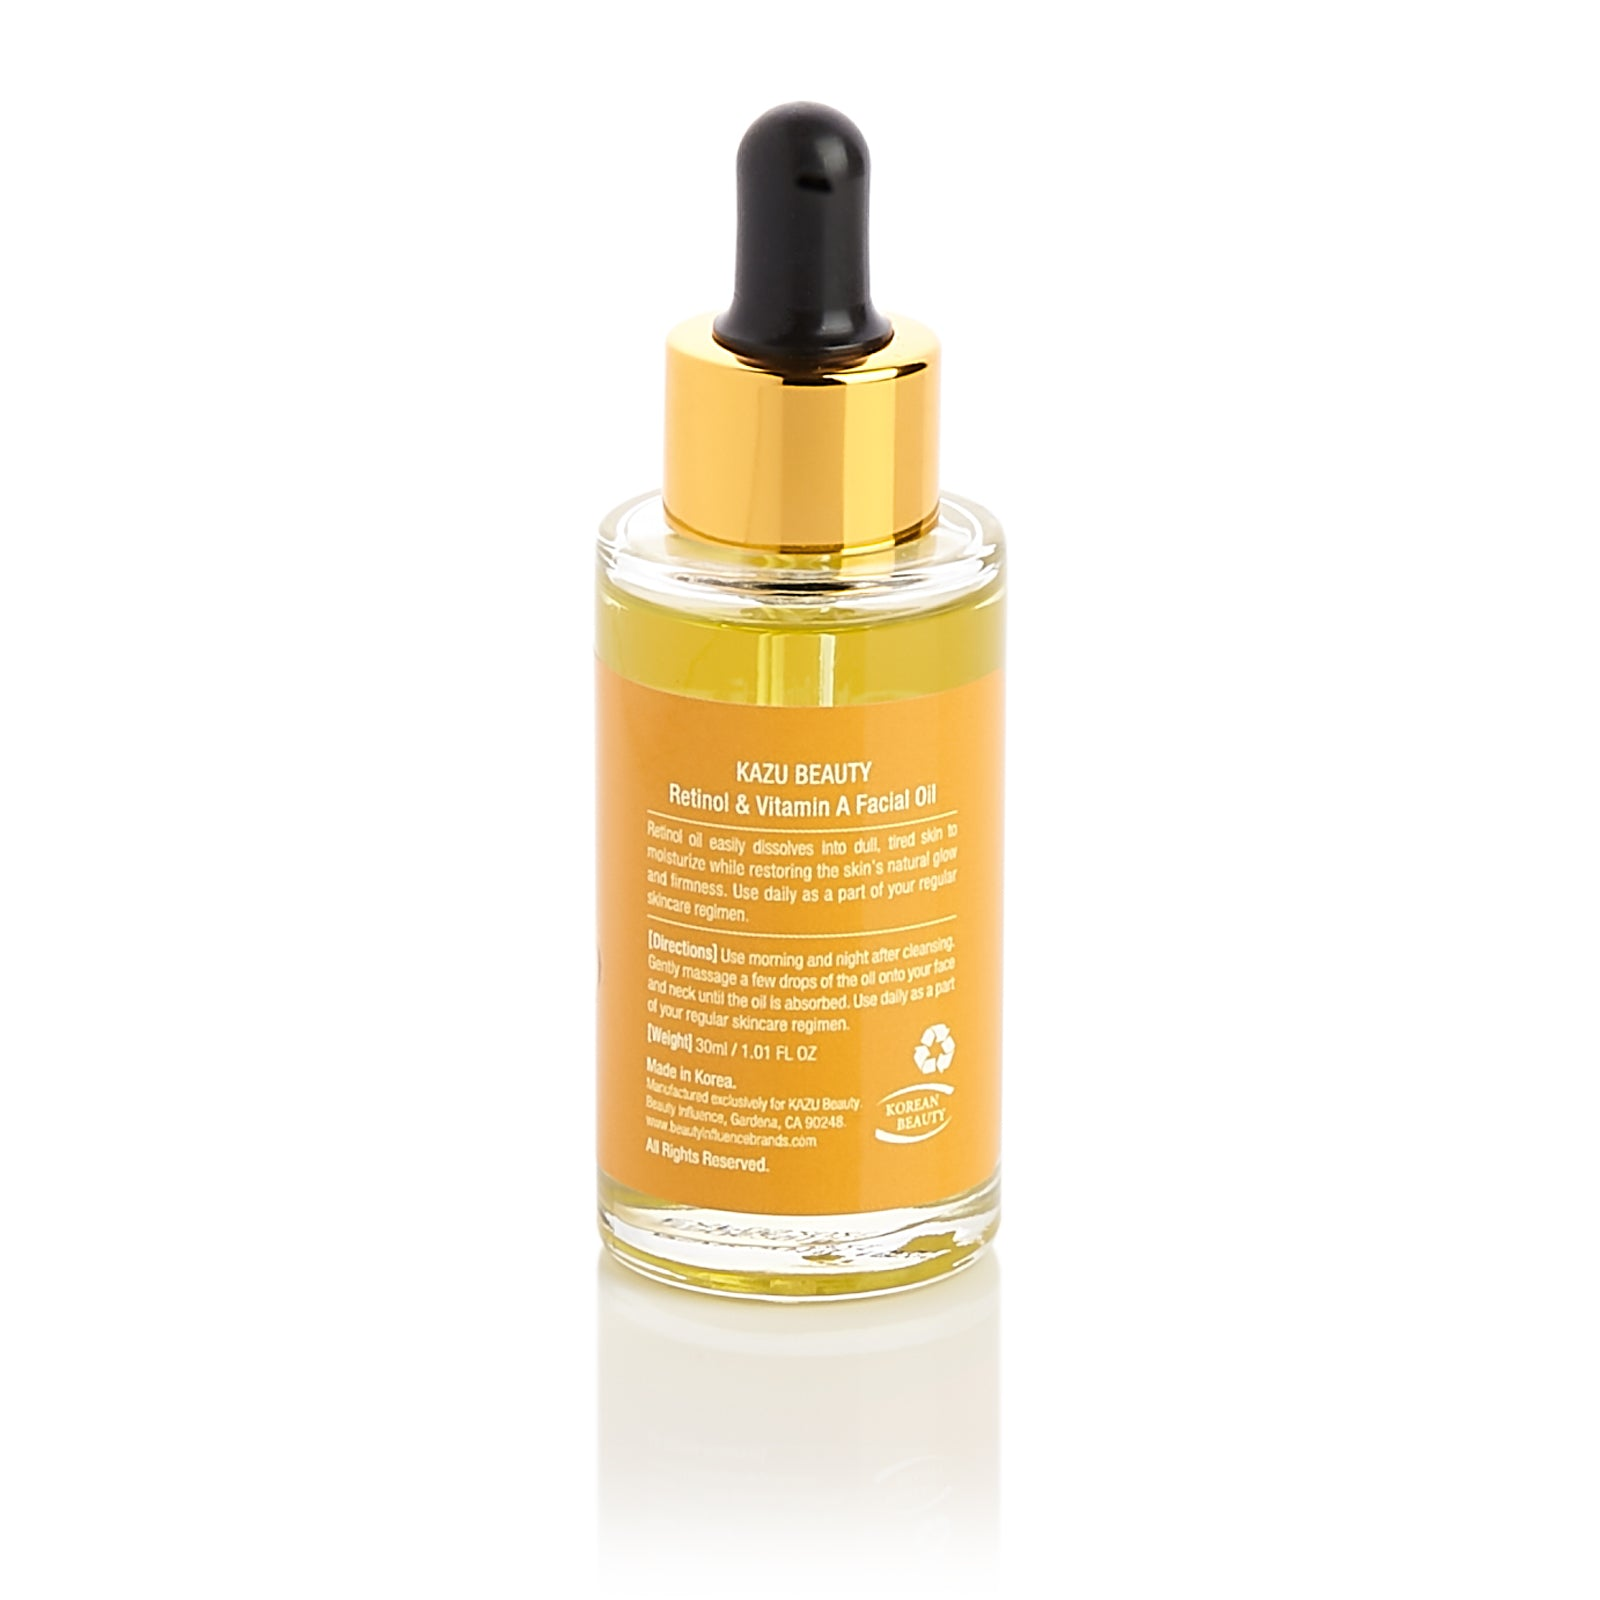 KAZU Beauty Retinol and Vitamin A Facial Oil